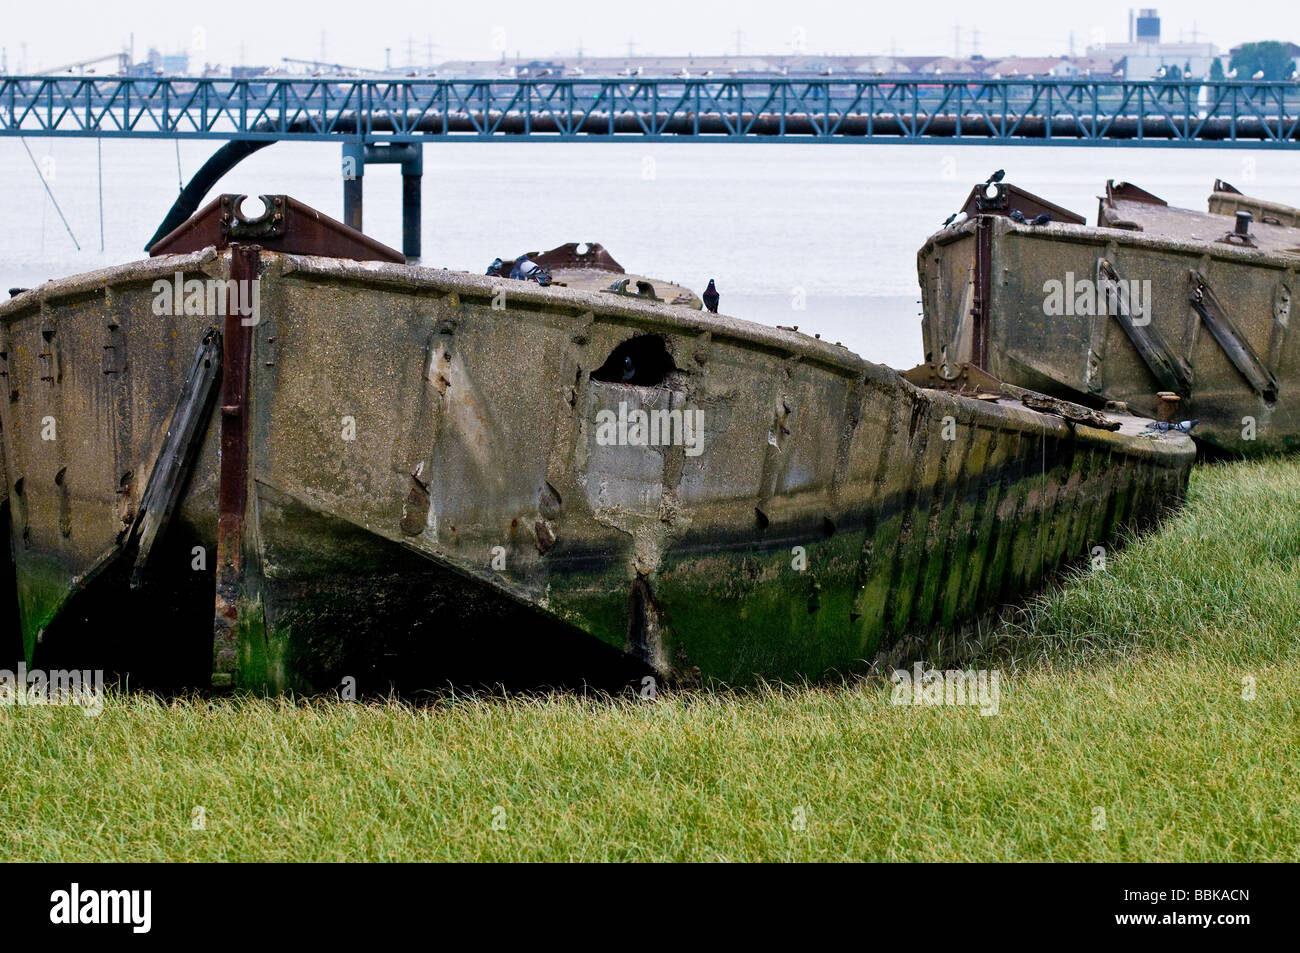 The remains of old concrete barges beached on the Essex foreshore of the Thames. - Stock Image